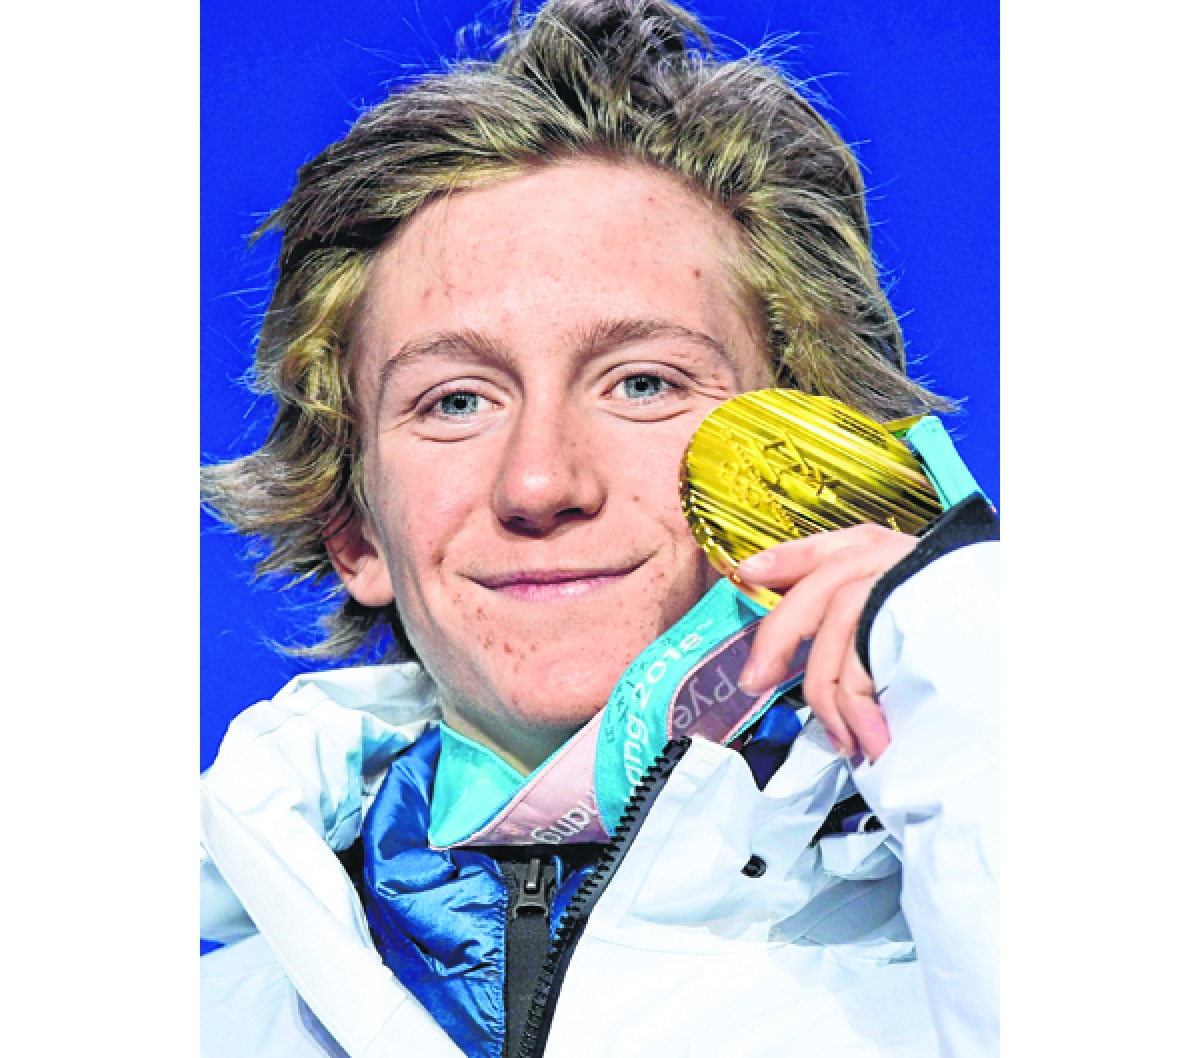 'Psyched' teen snowboarder Gerard takes first USA gold